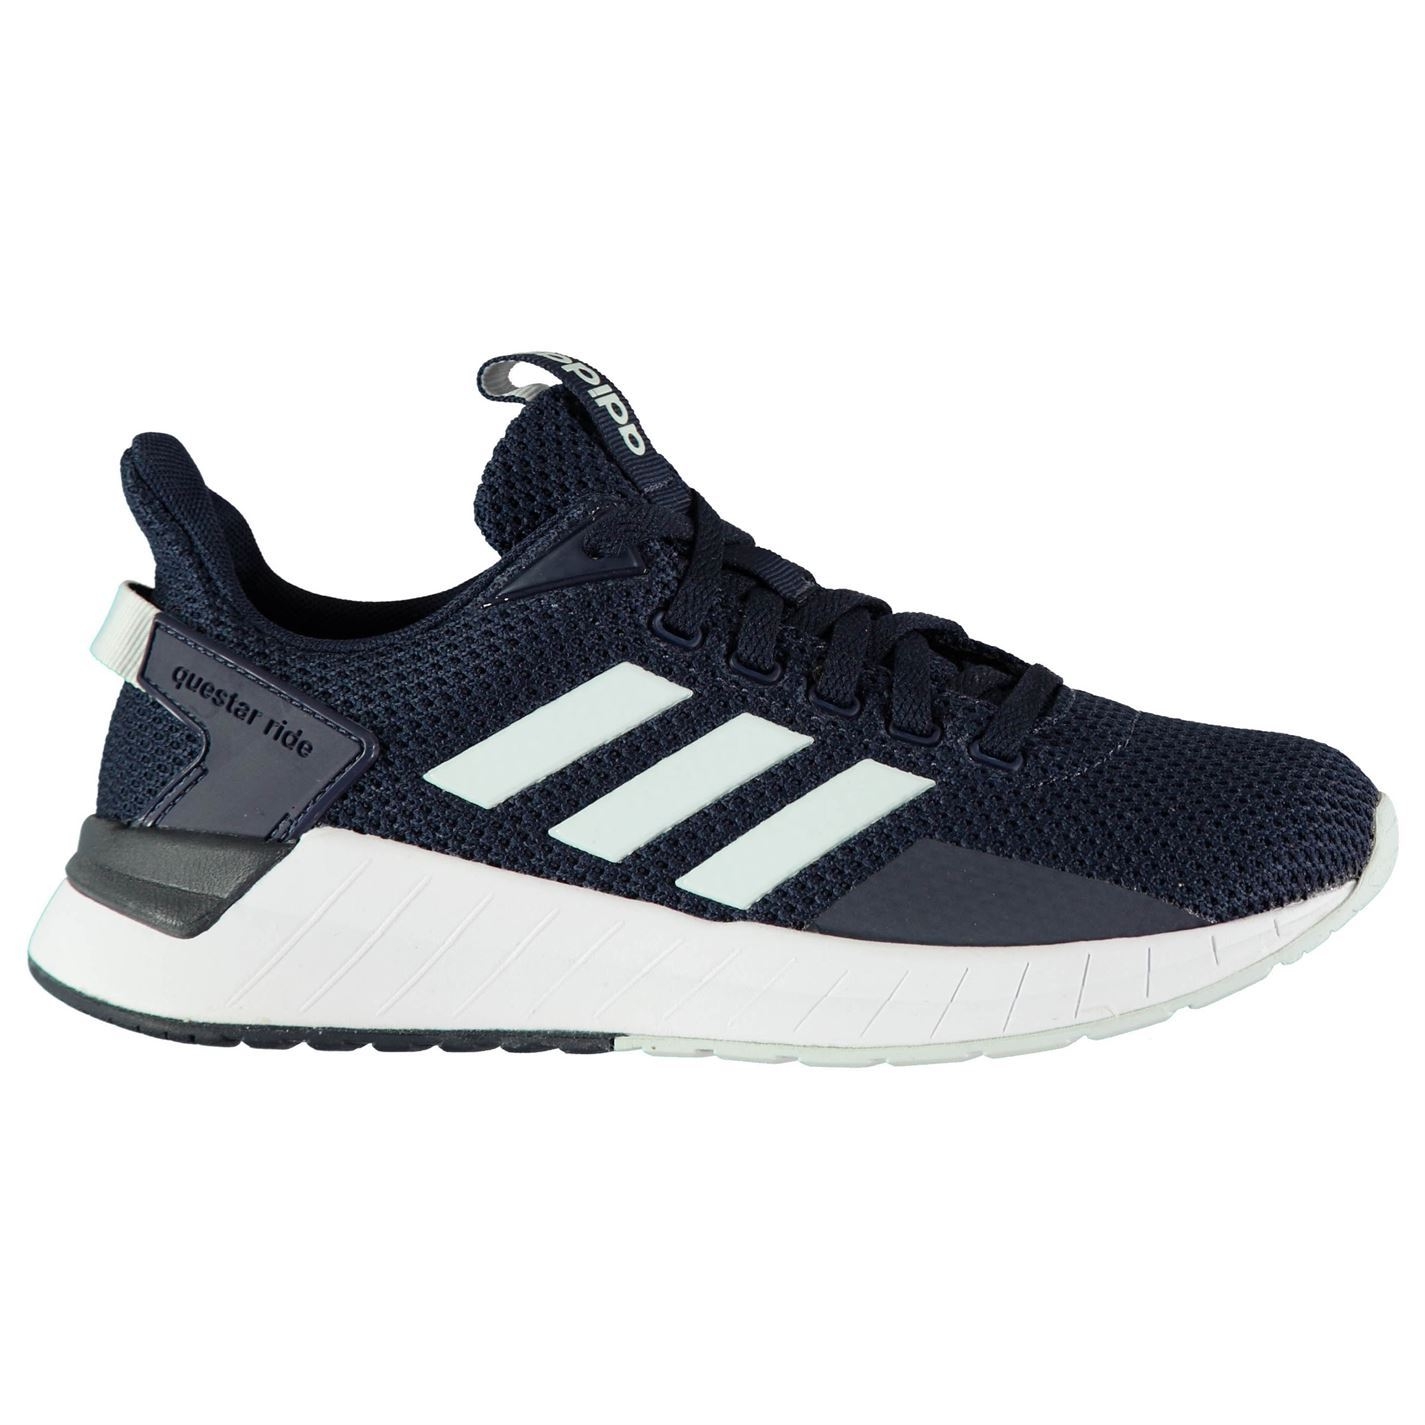 Details about adidas Questar Ride Running Shoes Womens NavyBlueWhite Run Trainers Sneakers